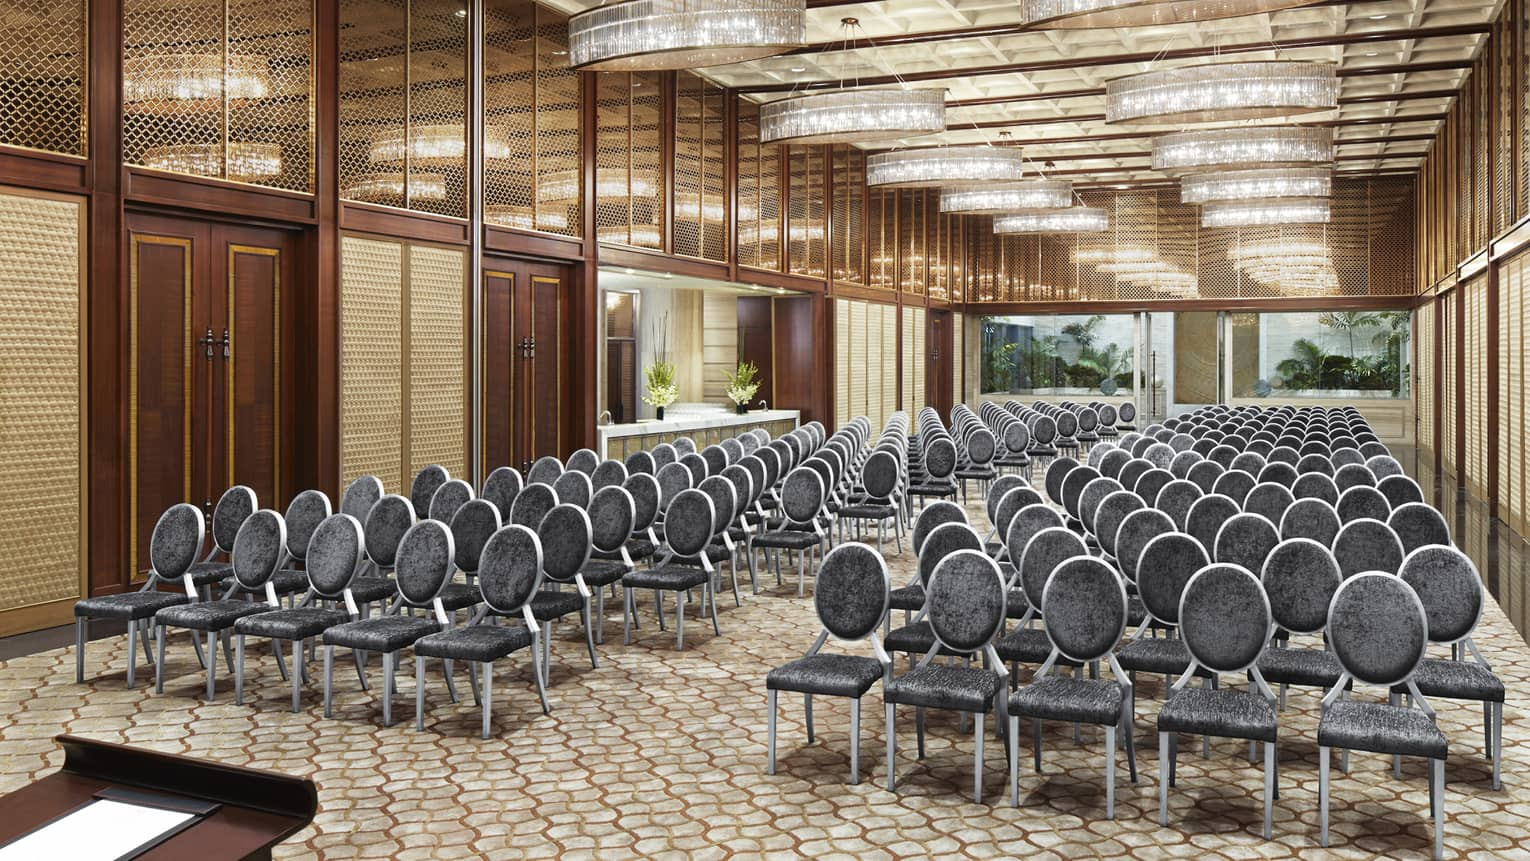 Rows of meeting chairs facing podium in long Gallery ballroom